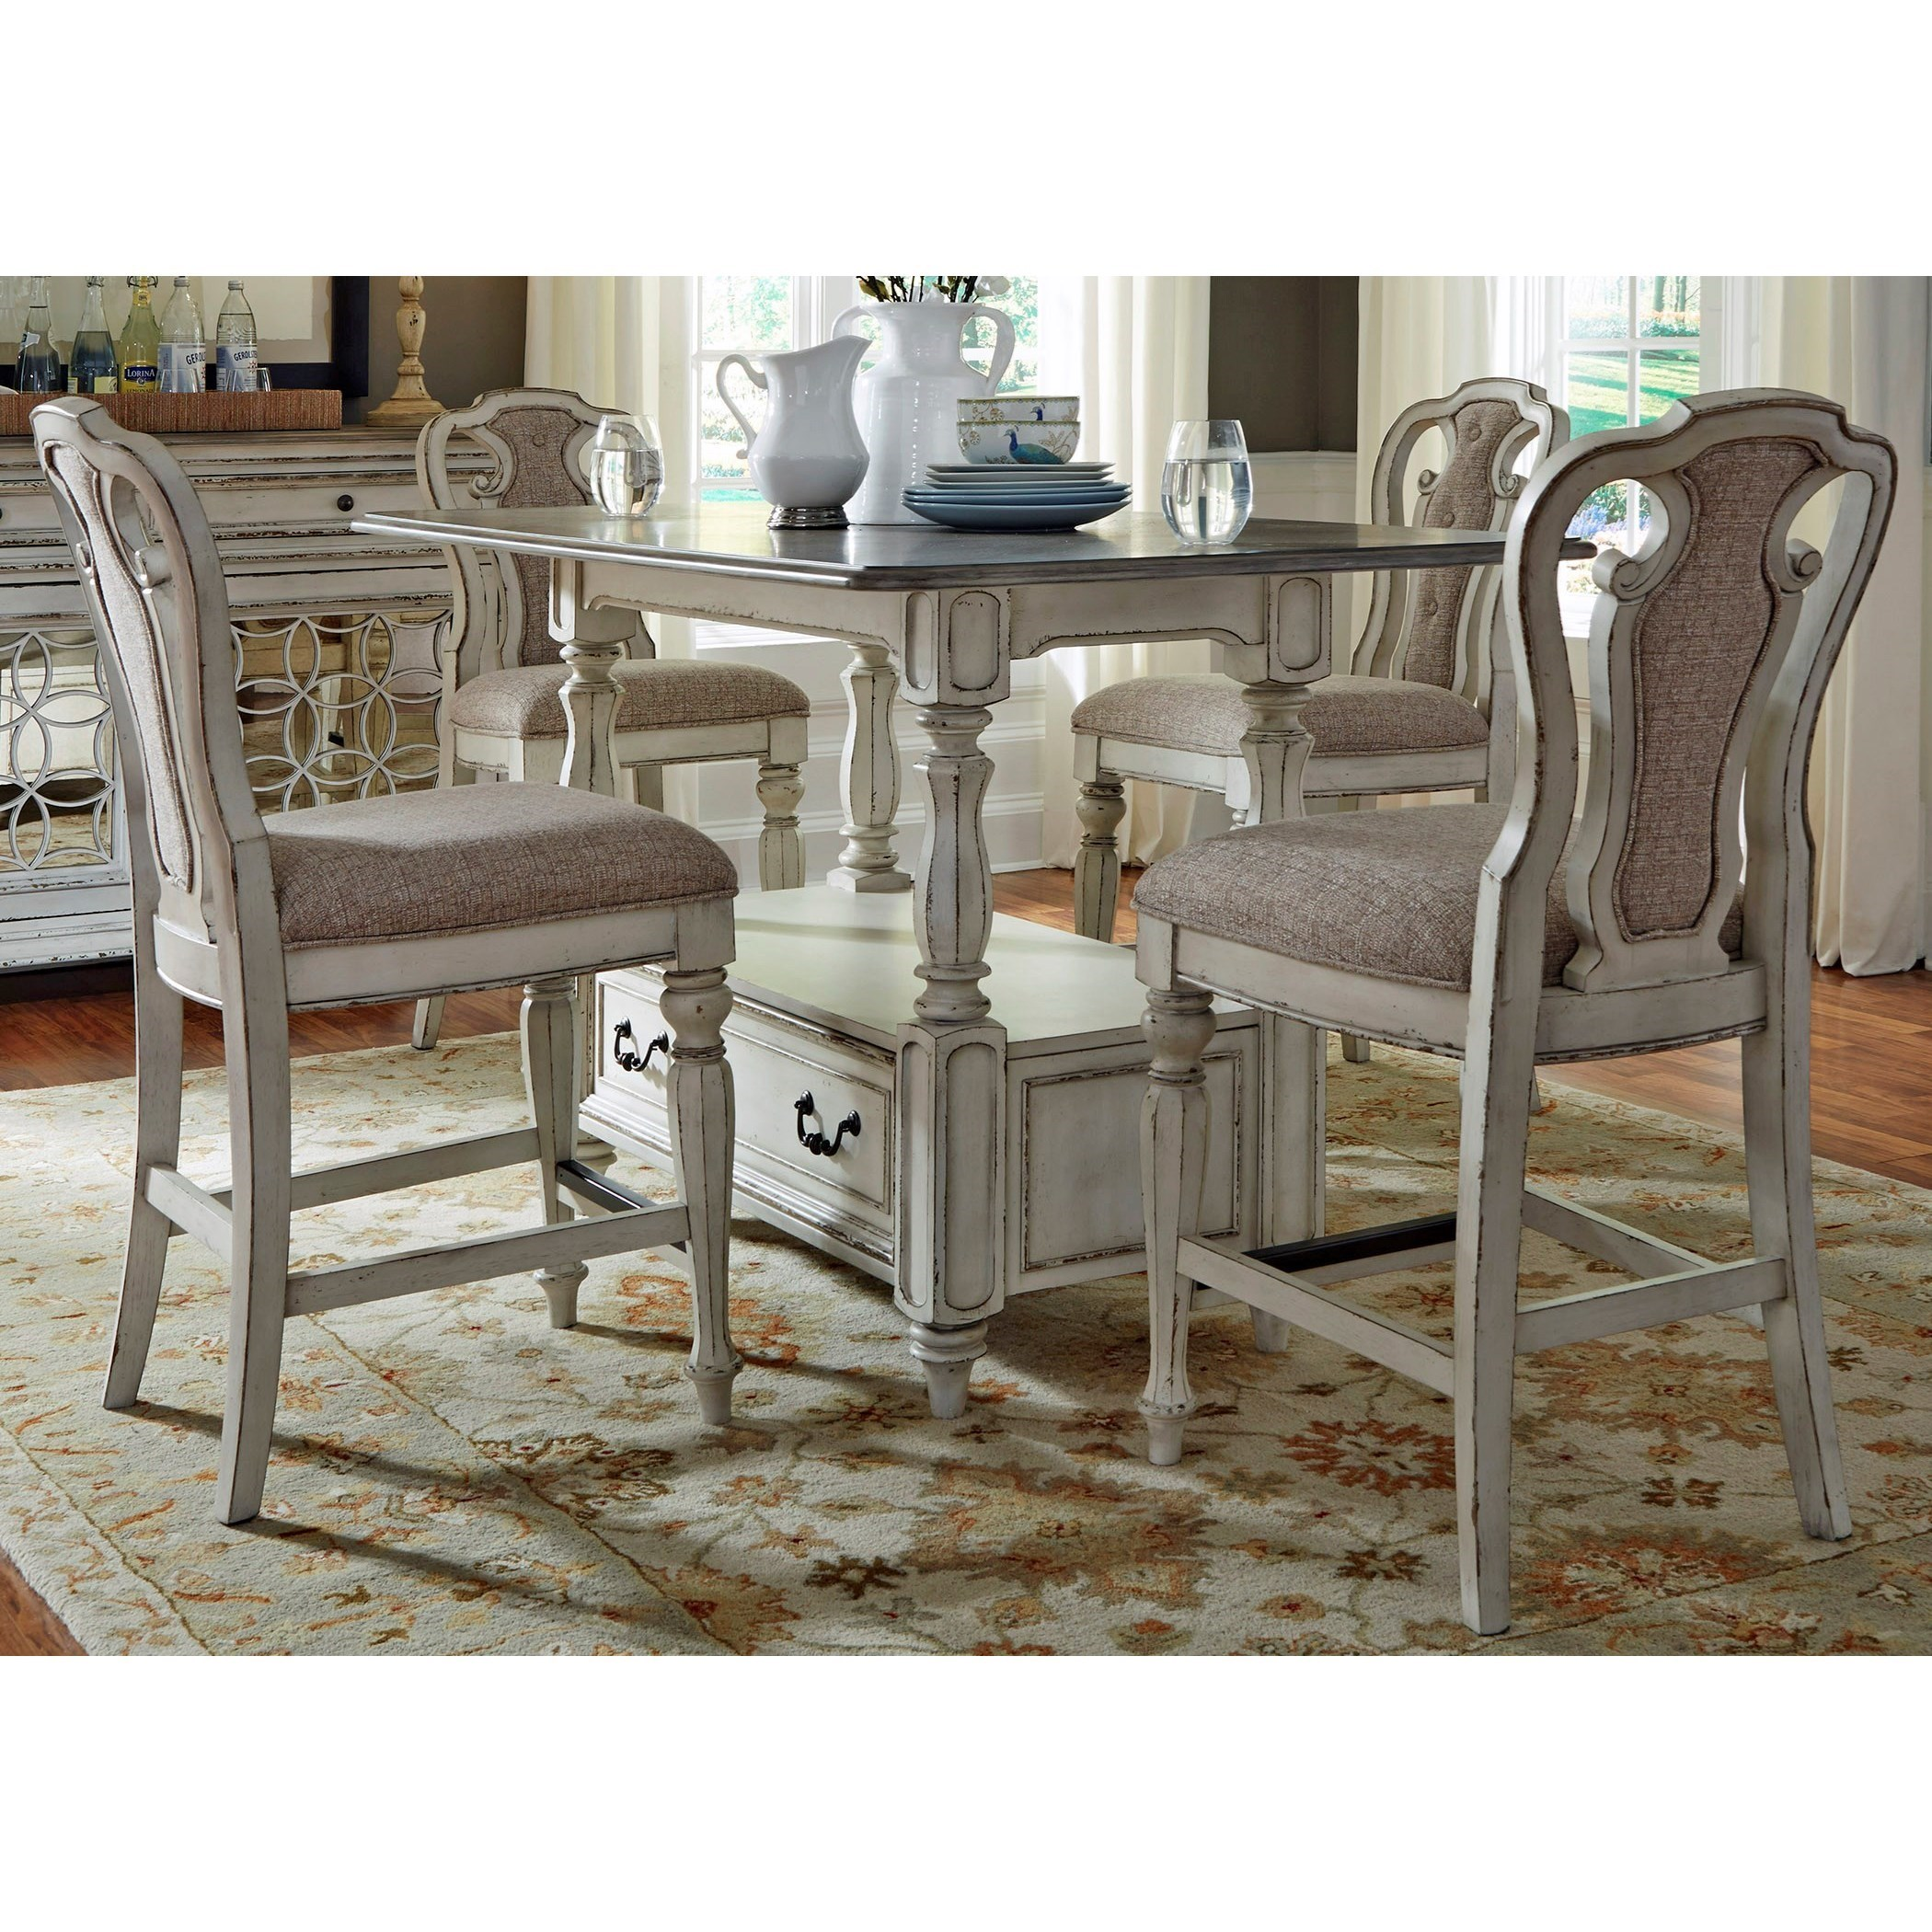 Liberty Furniture Magnolia Manor DiningGathering Table and Chair Set  sc 1 st  Hudsonu0027s Furniture & Liberty Furniture Magnolia Manor Dining 244-DR-5GTS Rectangular ...